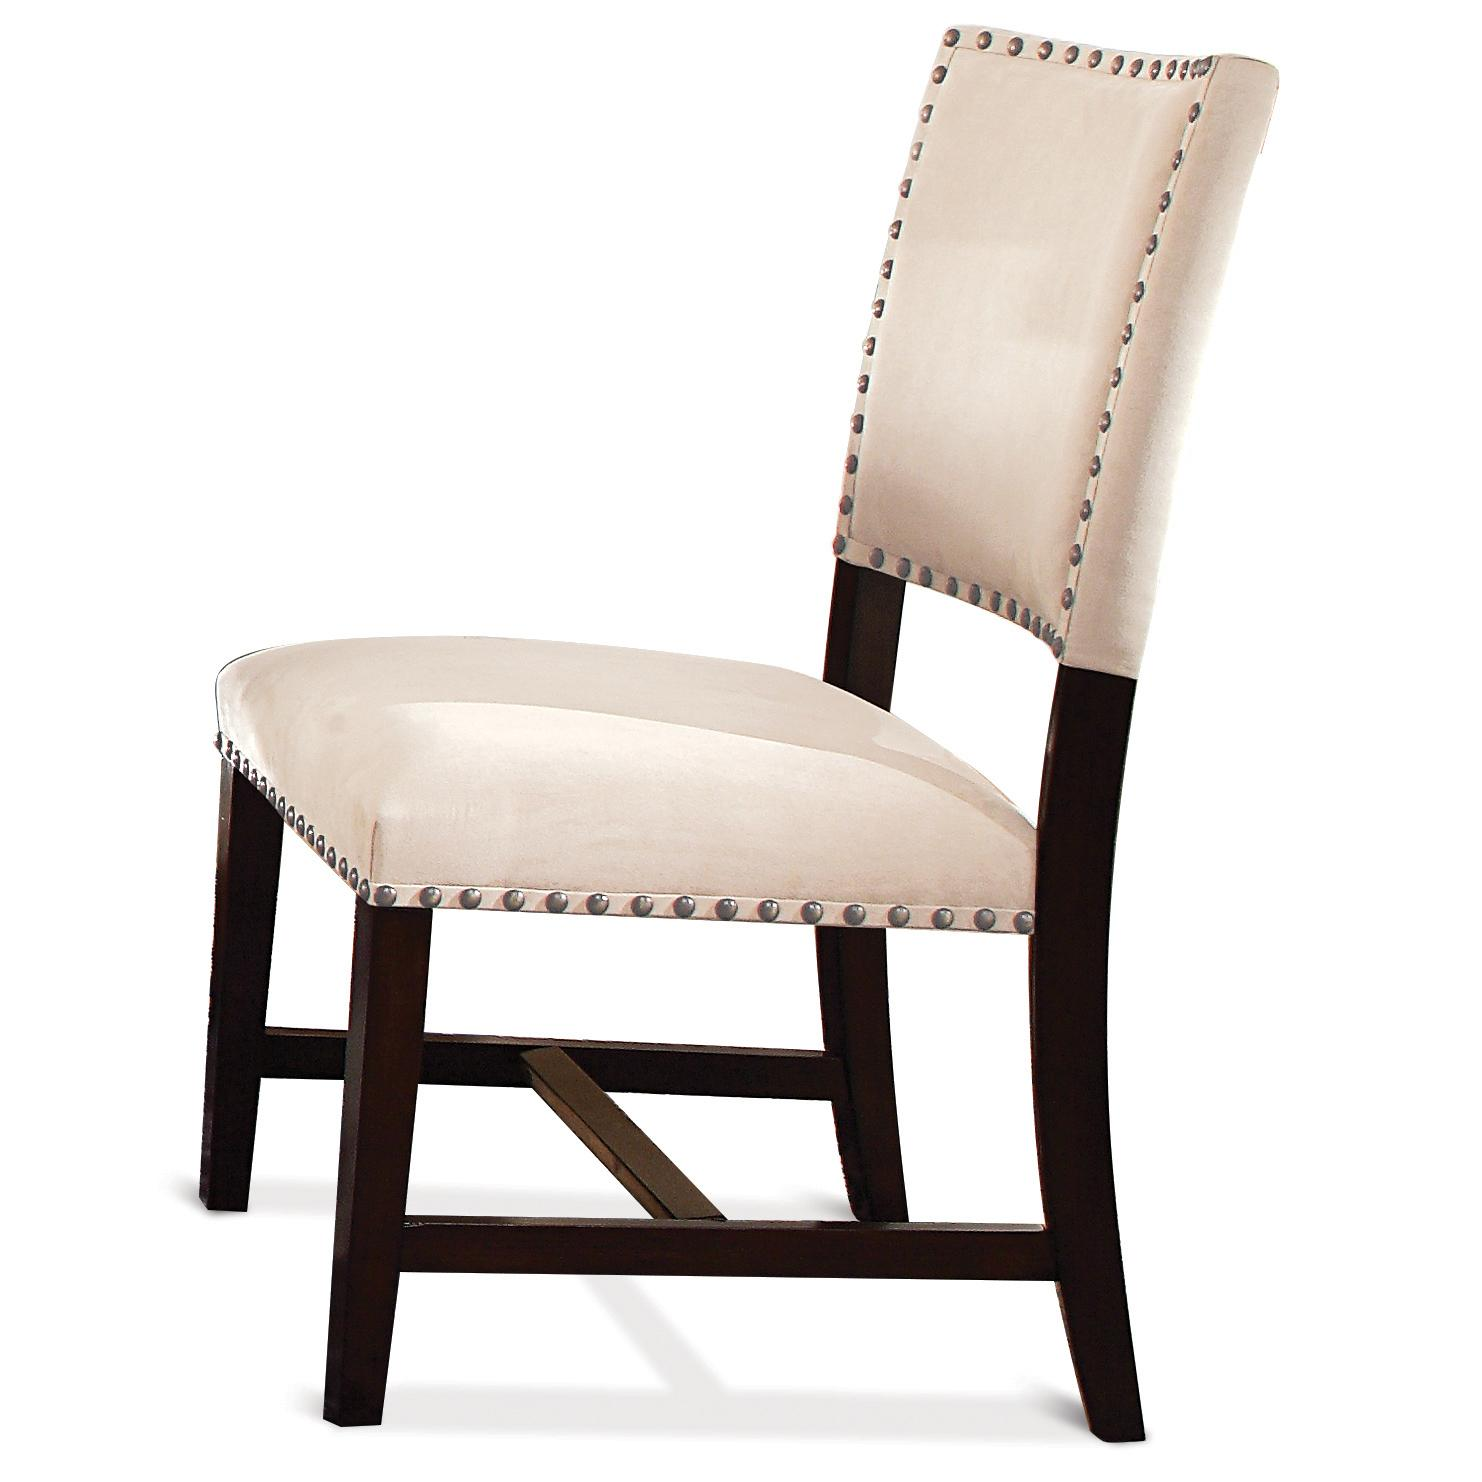 Micro Fiber Upholstered Parson Chair with Nailhead Trim by